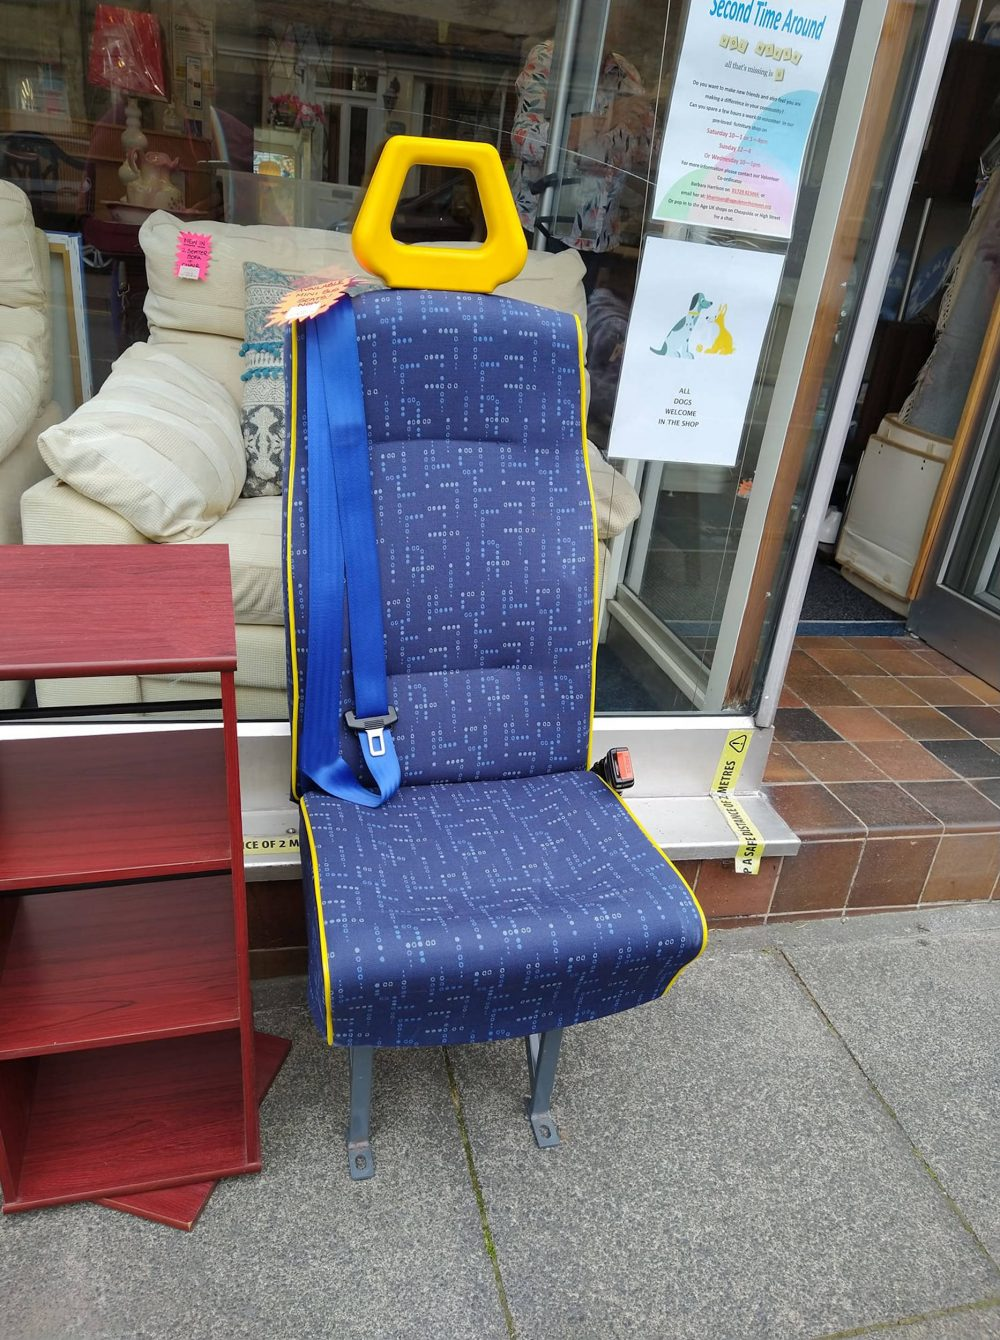 The single bus seat for sale   Consumer News UK